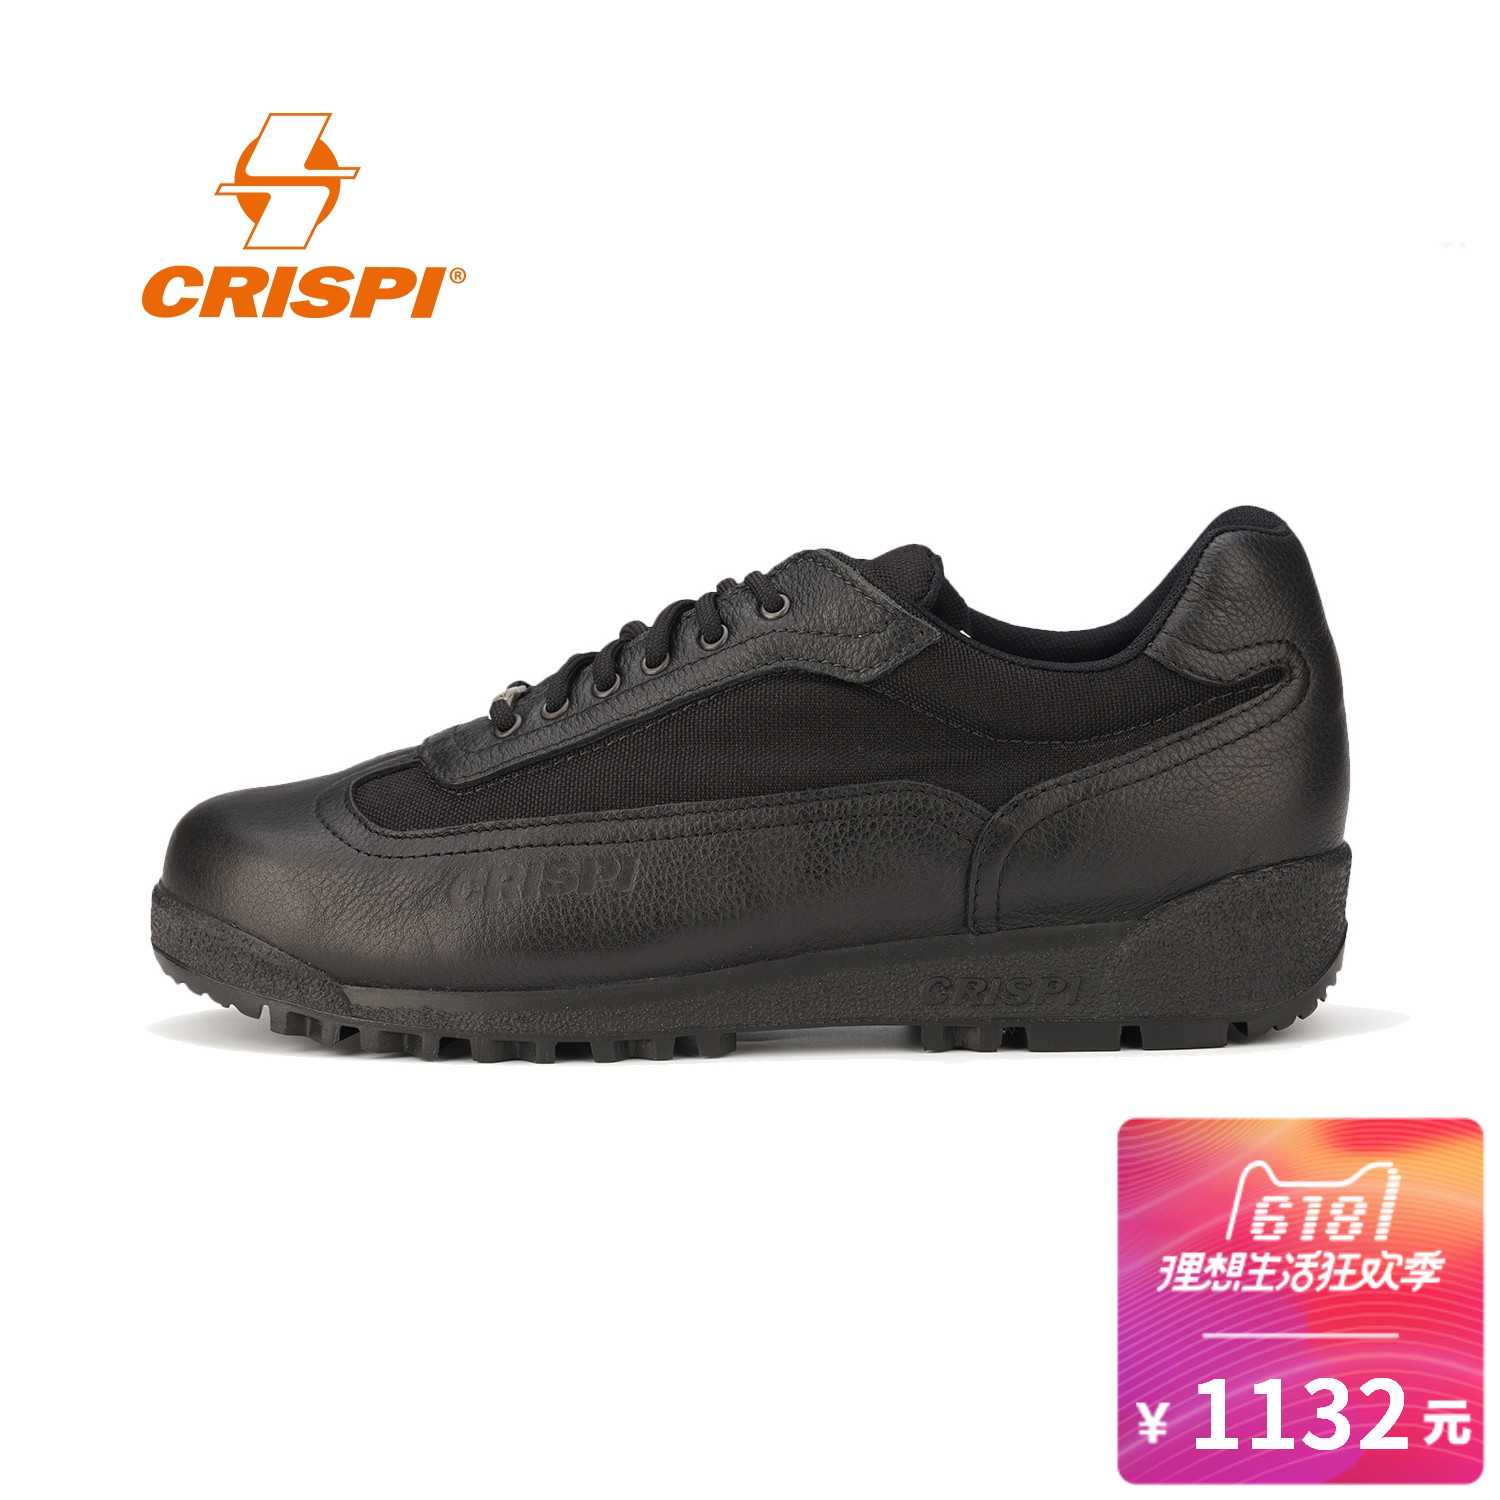 CRISPI shoes spring and summer men and women low walking hiking shoes multi-purpose shoes BLACK YORK3525699